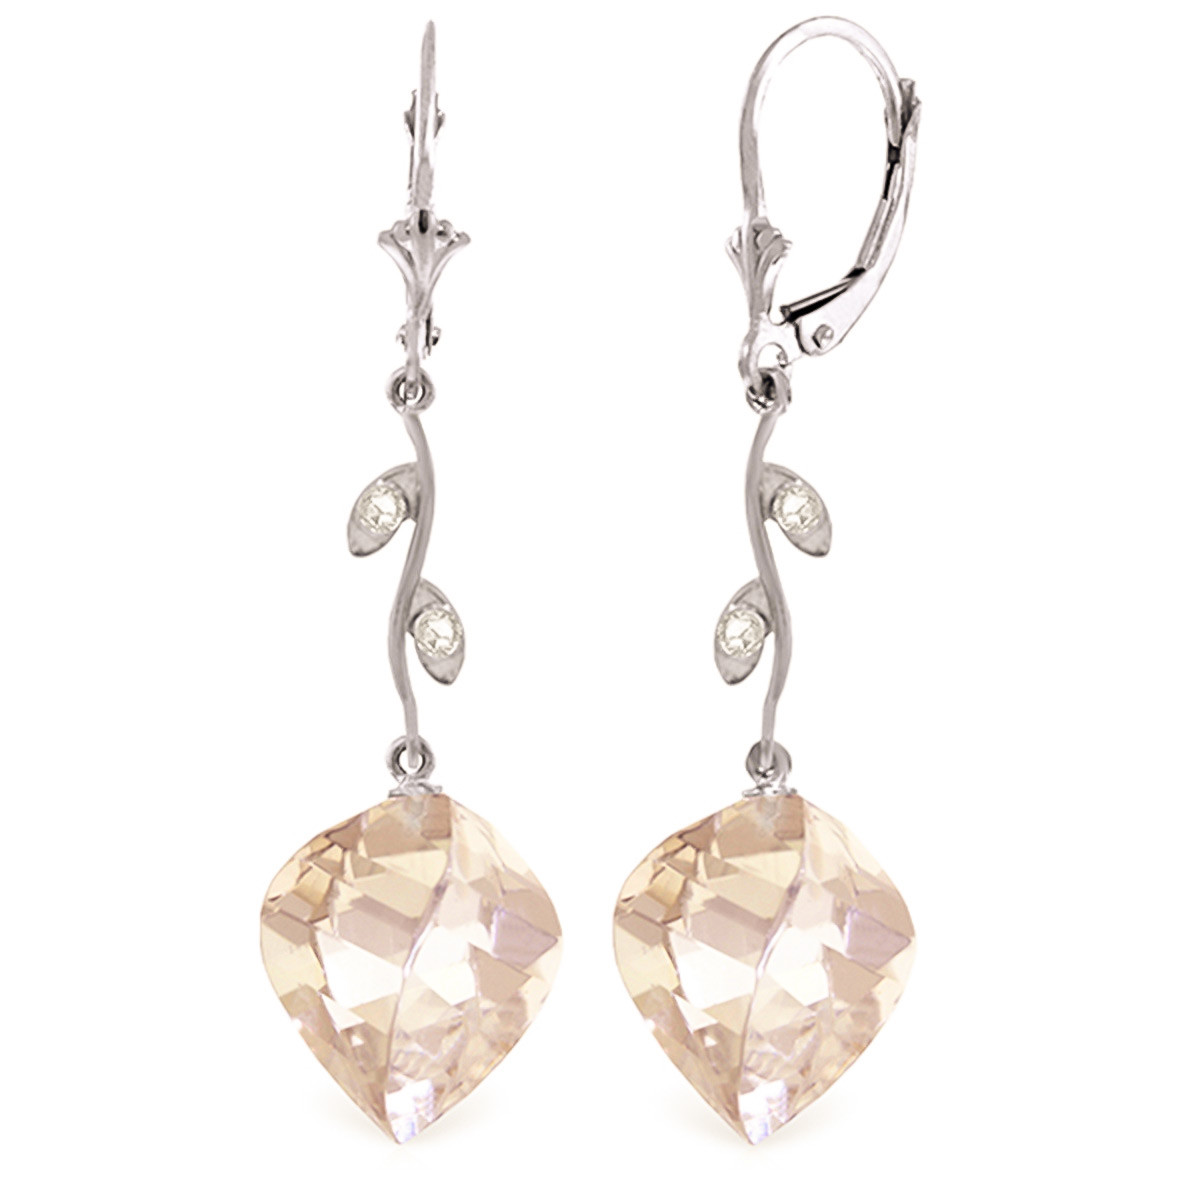 White Topaz Drop Earrings 25.62 ctw in 9ct White Gold